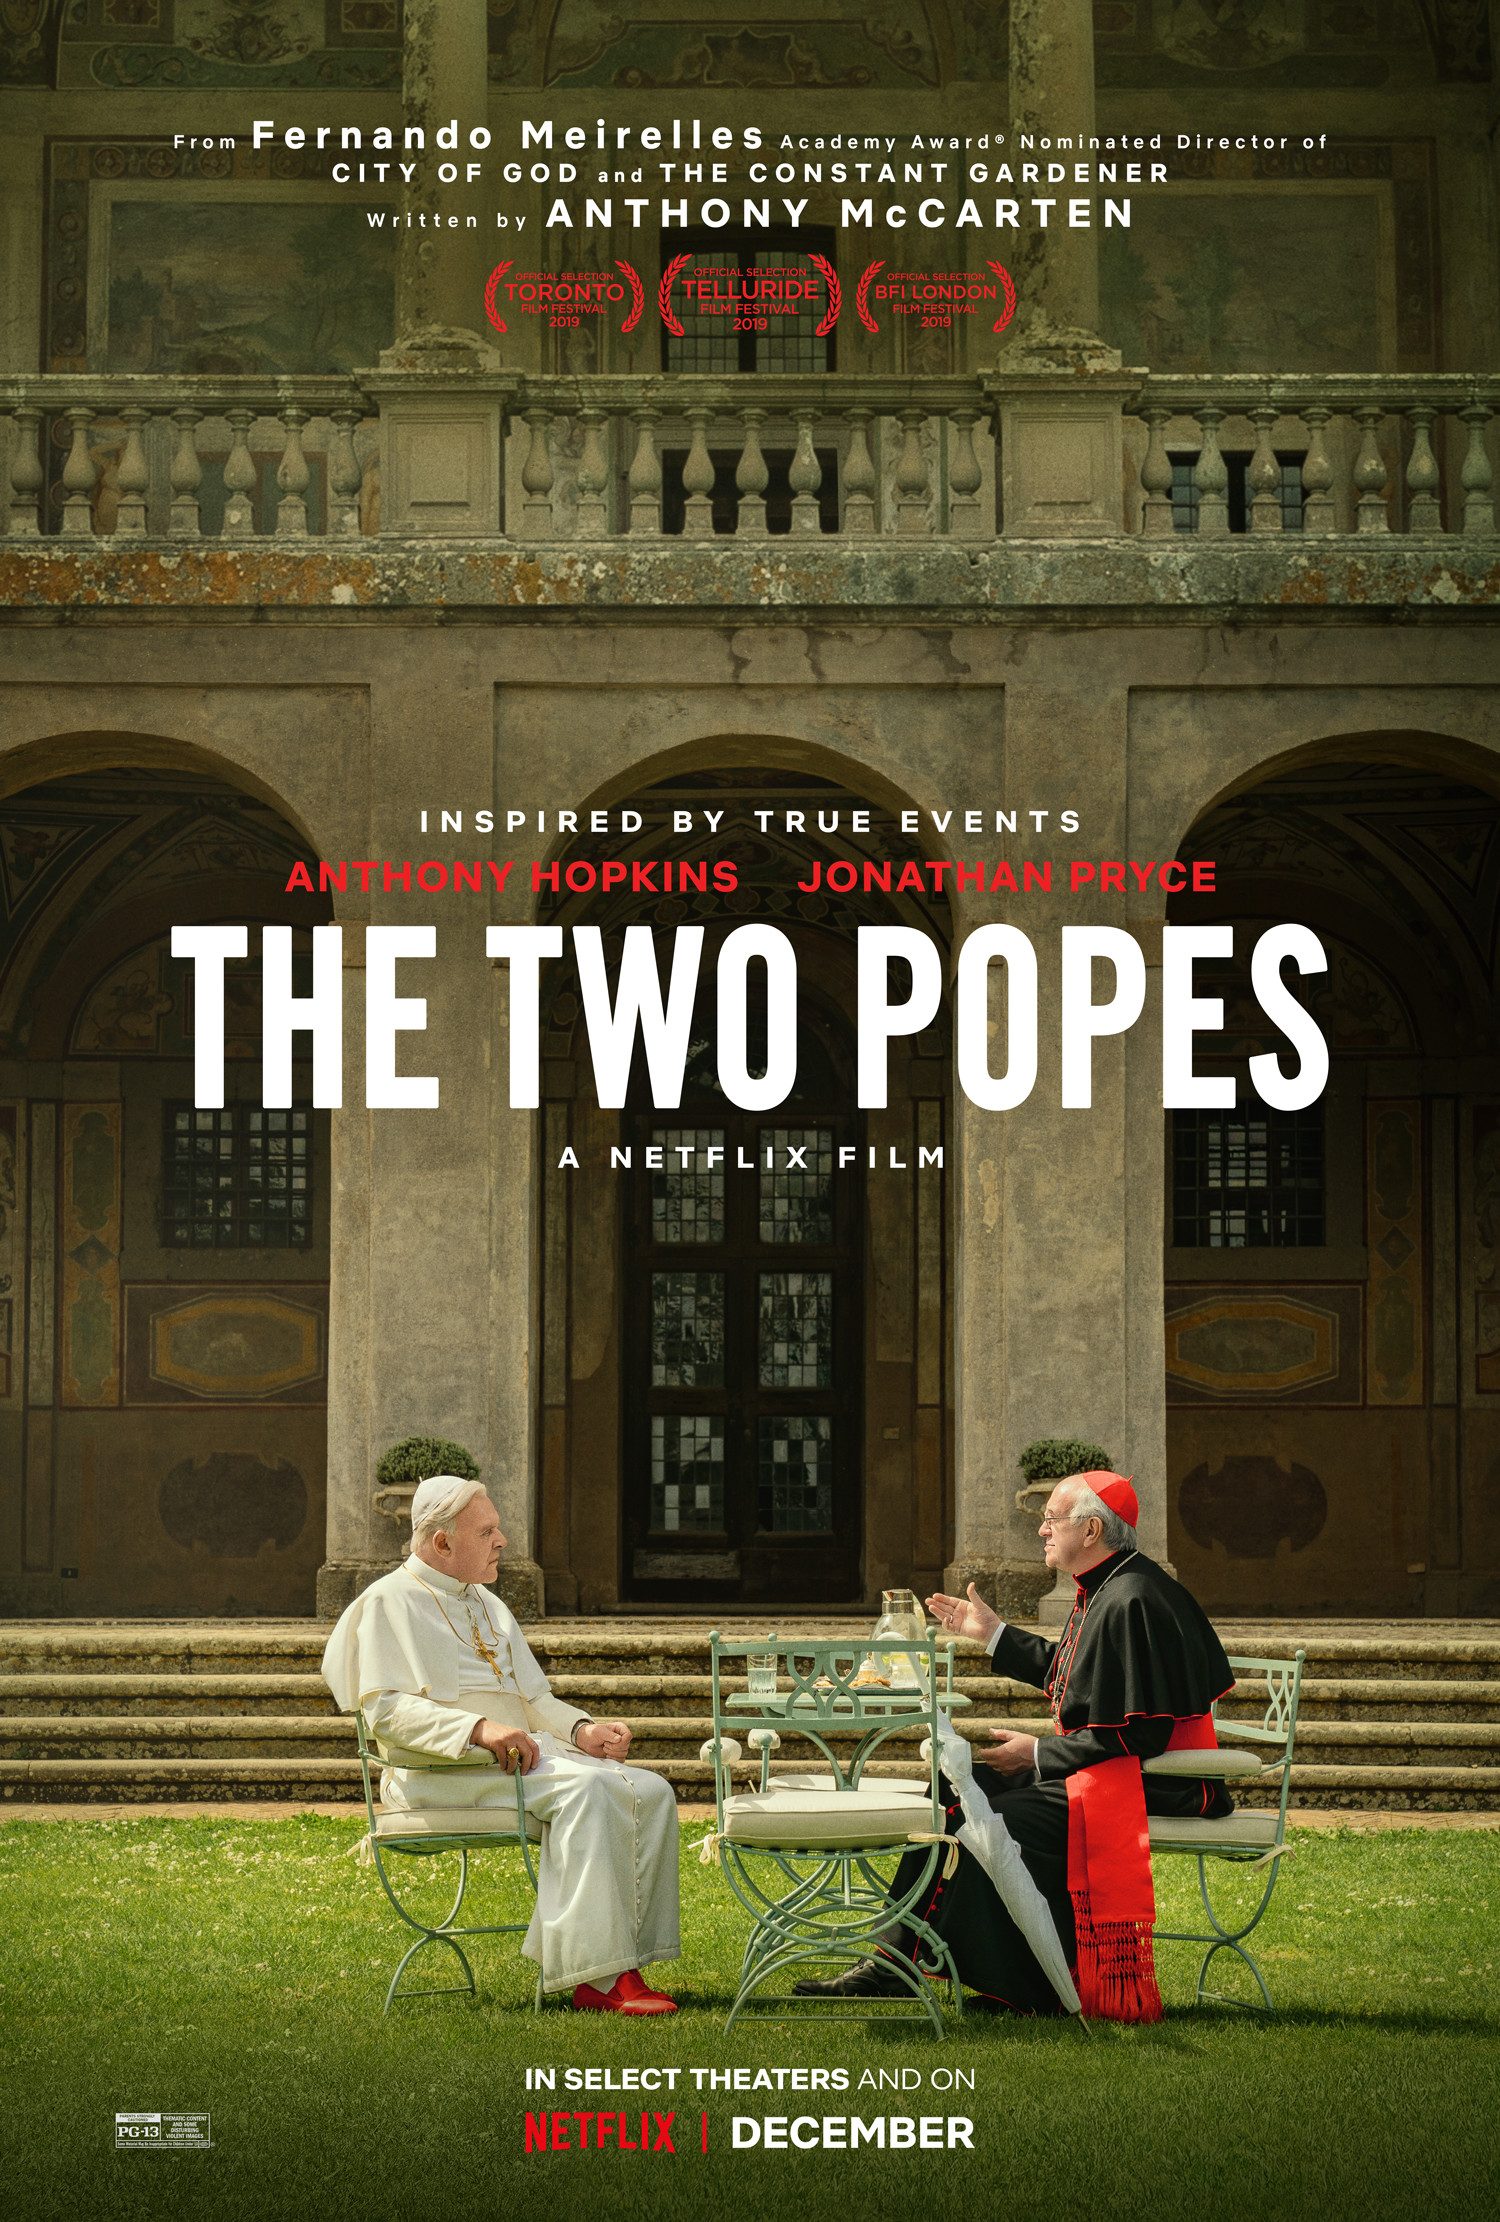 The 2 Popes, Anthony Hopkins, Jonathyn Price IMDB Movie Poster